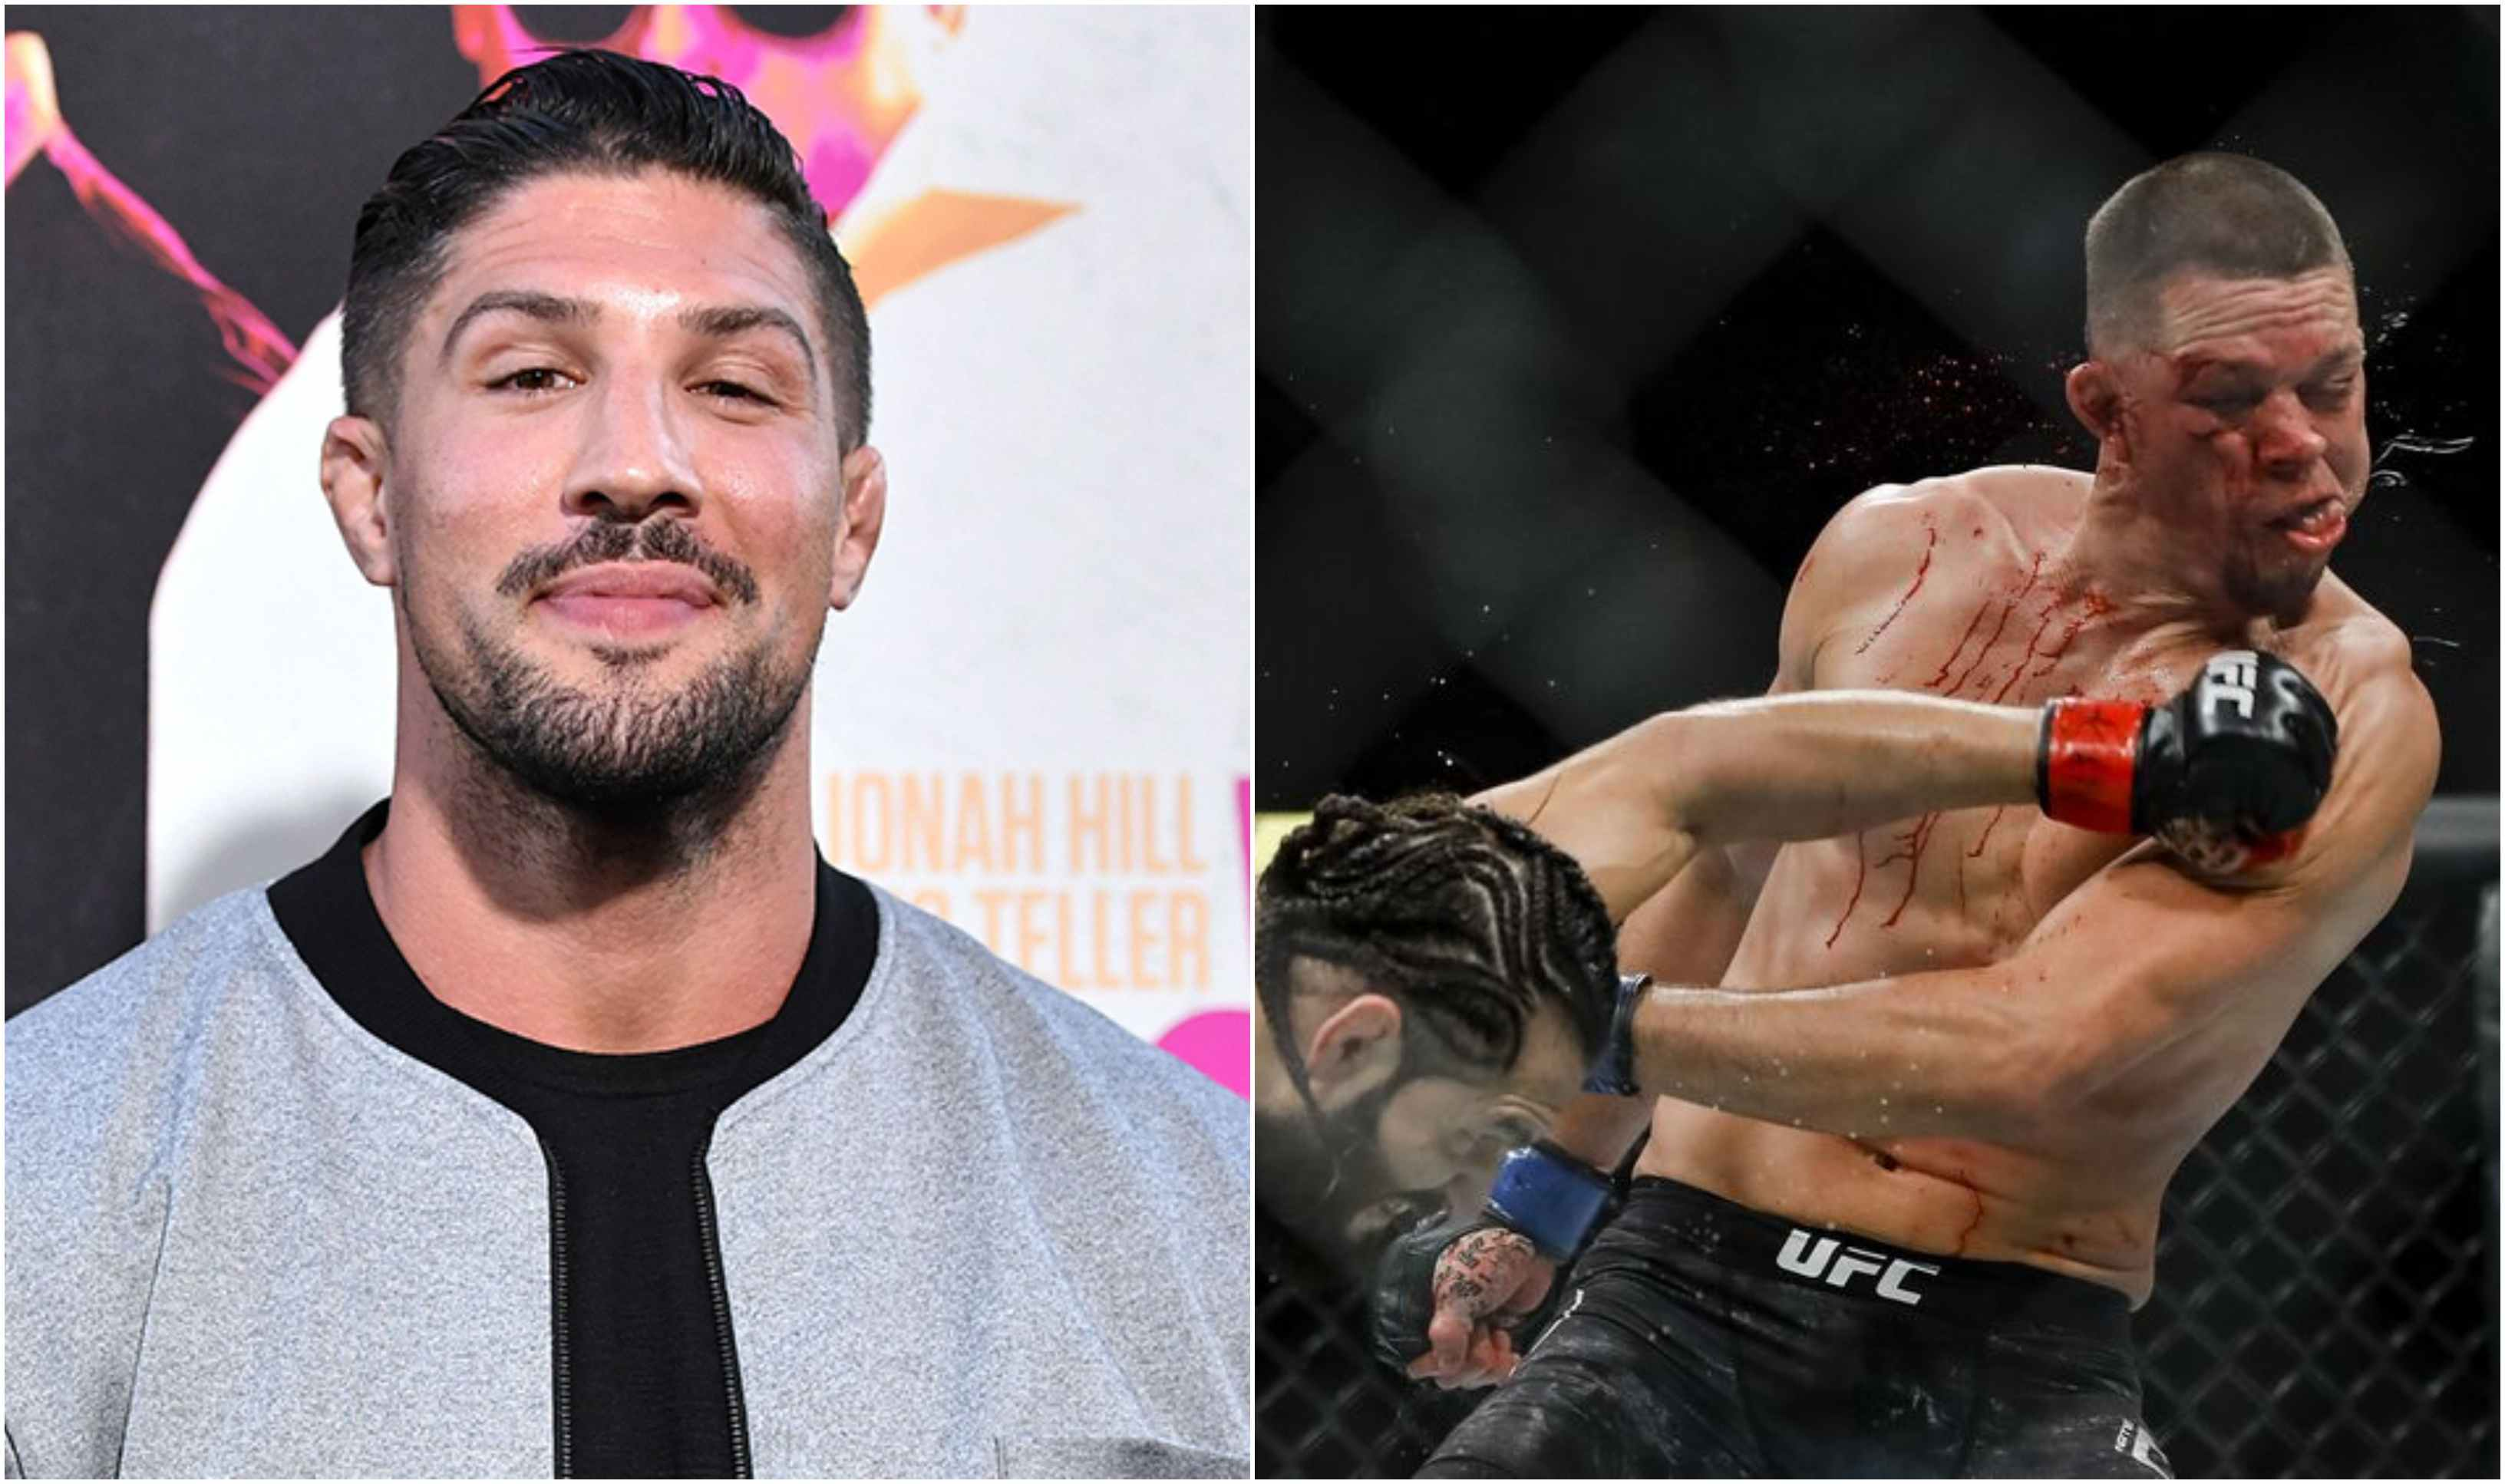 Brendan Schaub agrees with Doctor's stoppage at UFC 244 Main Event - Brendan